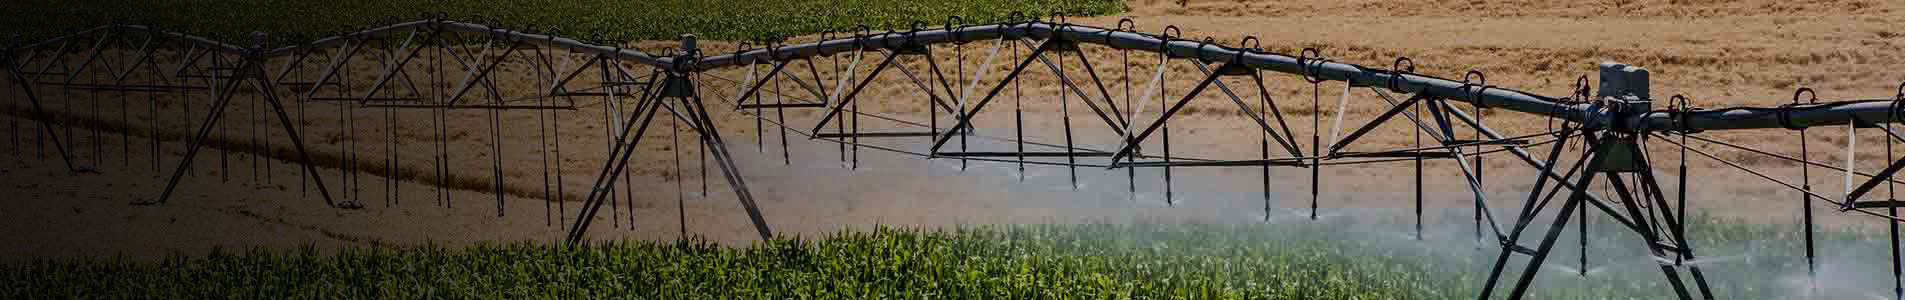 valley variable rate irrigation prescriptions - water application management solution